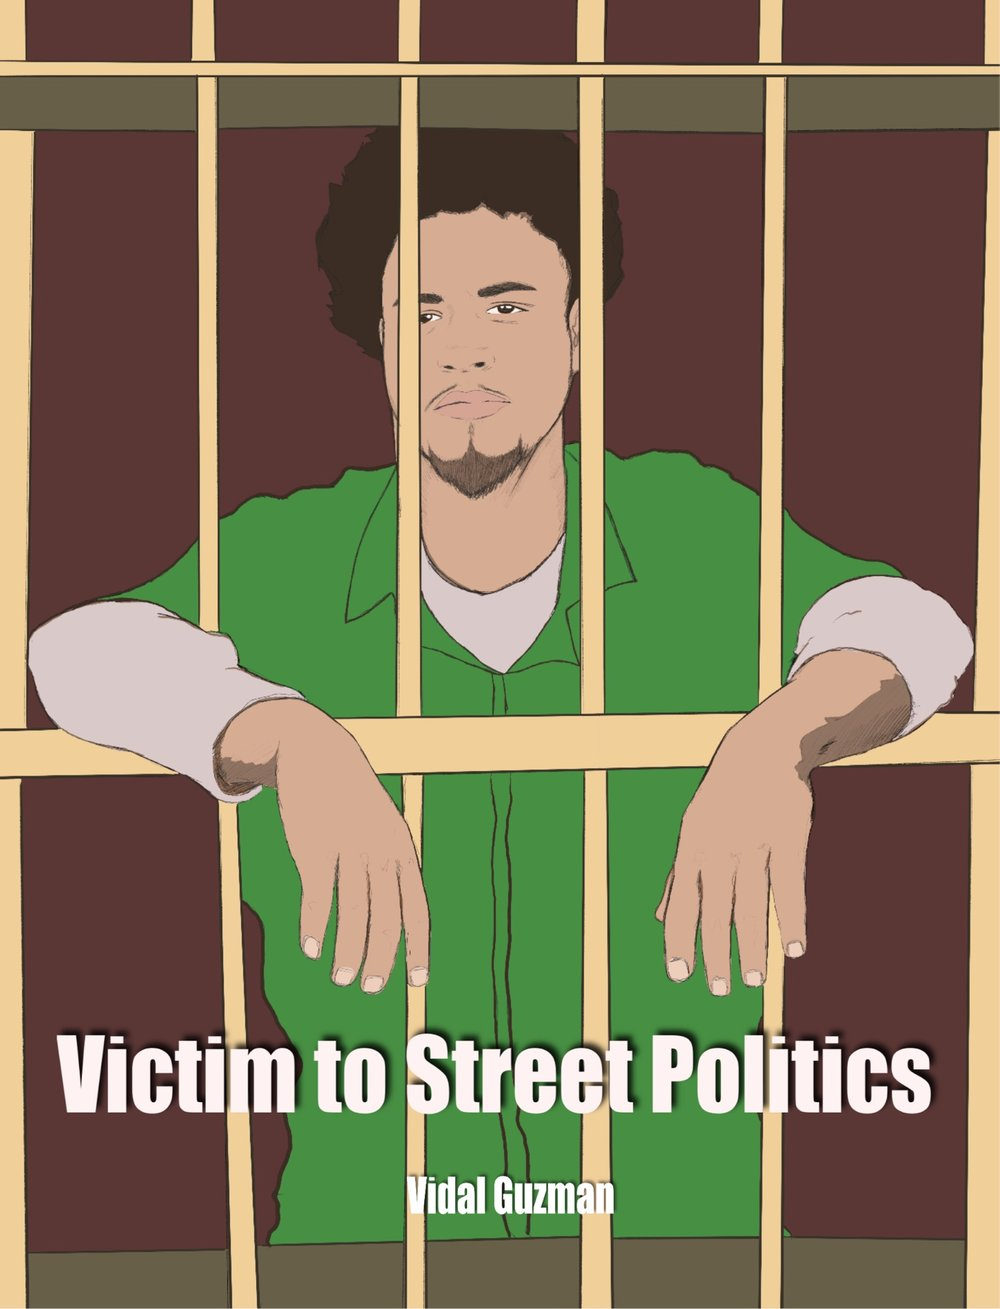 Victim to Street Politics